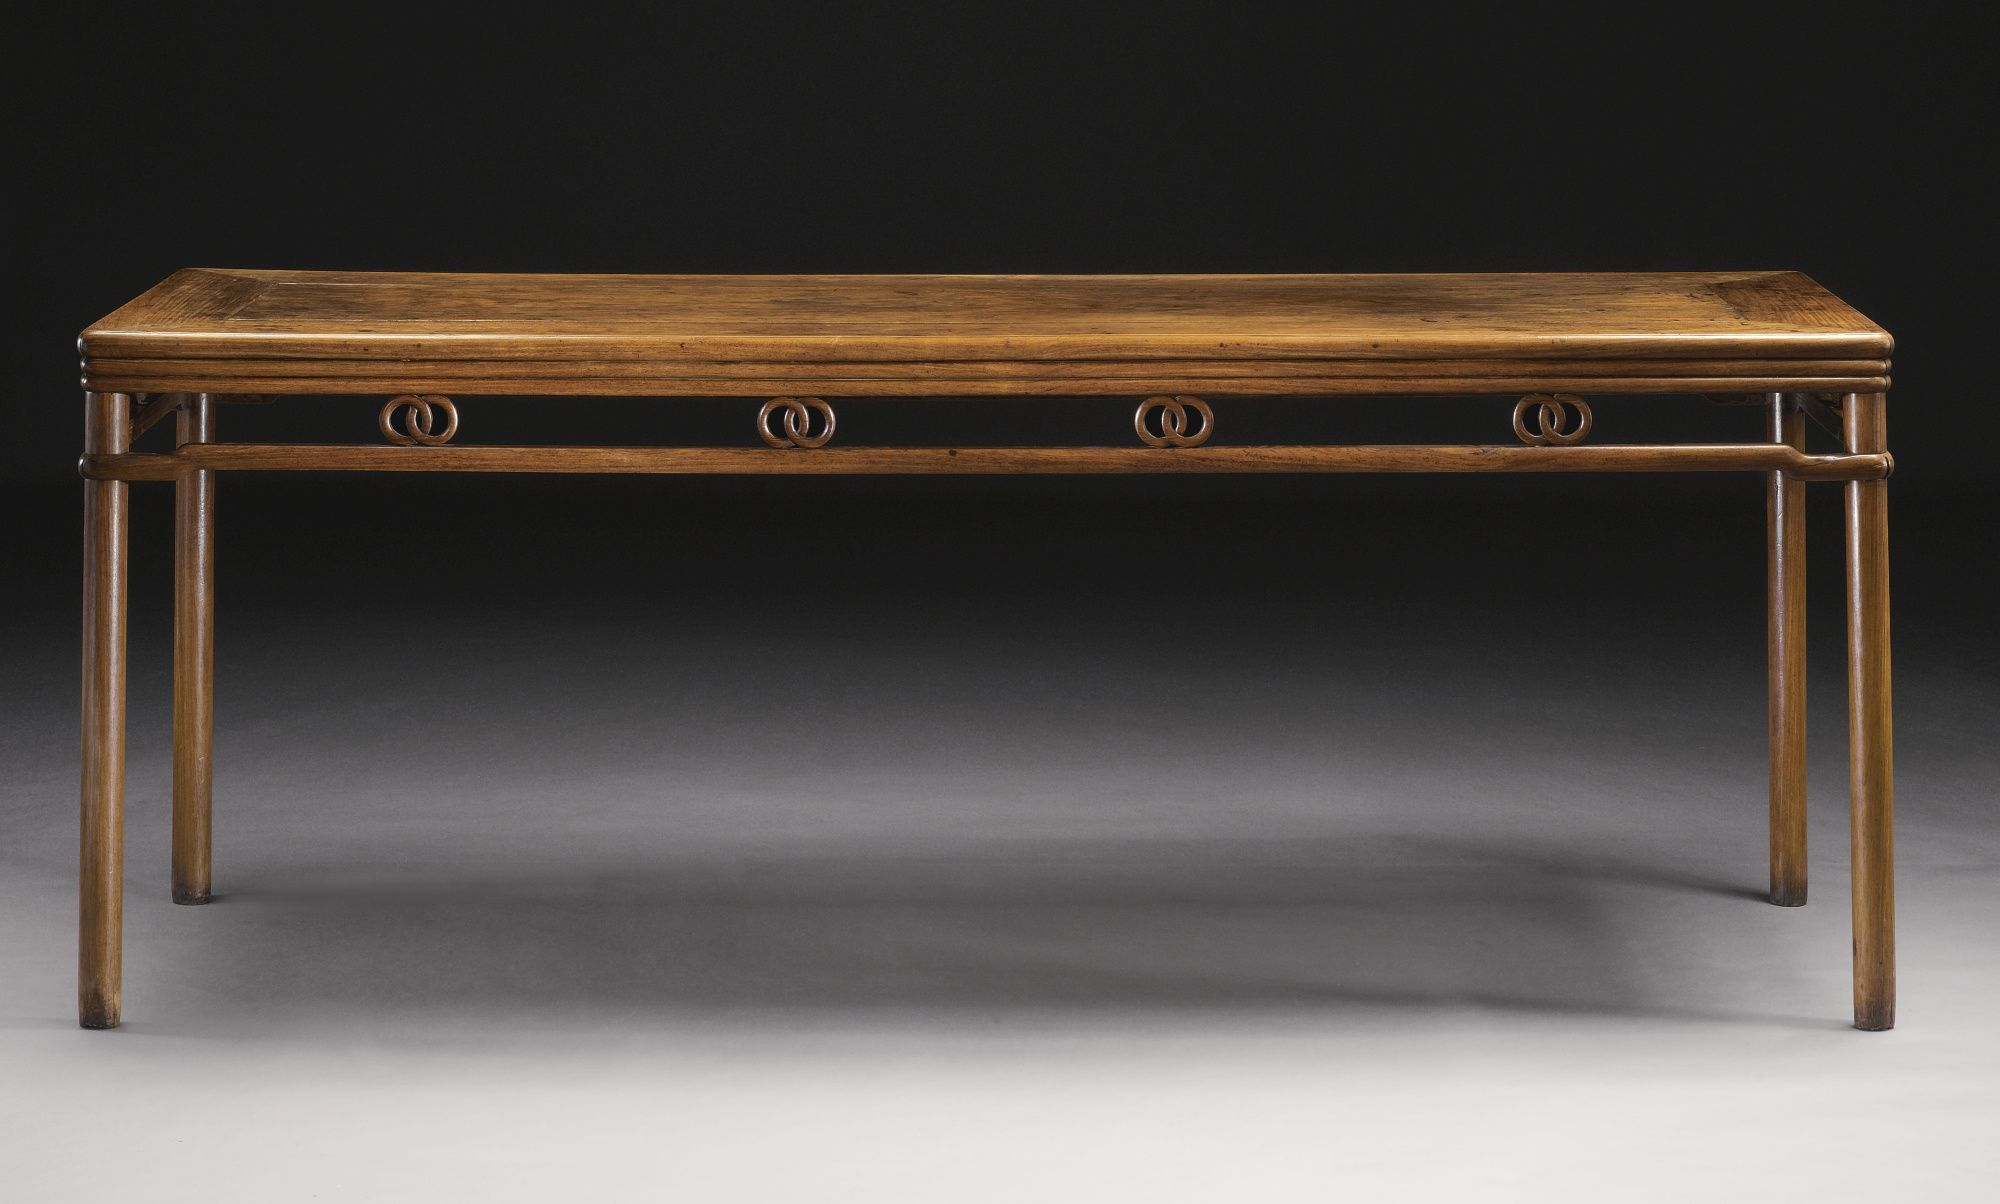 A Huanghuali Corner Leg Painting Table (huazhuo), 17th Century